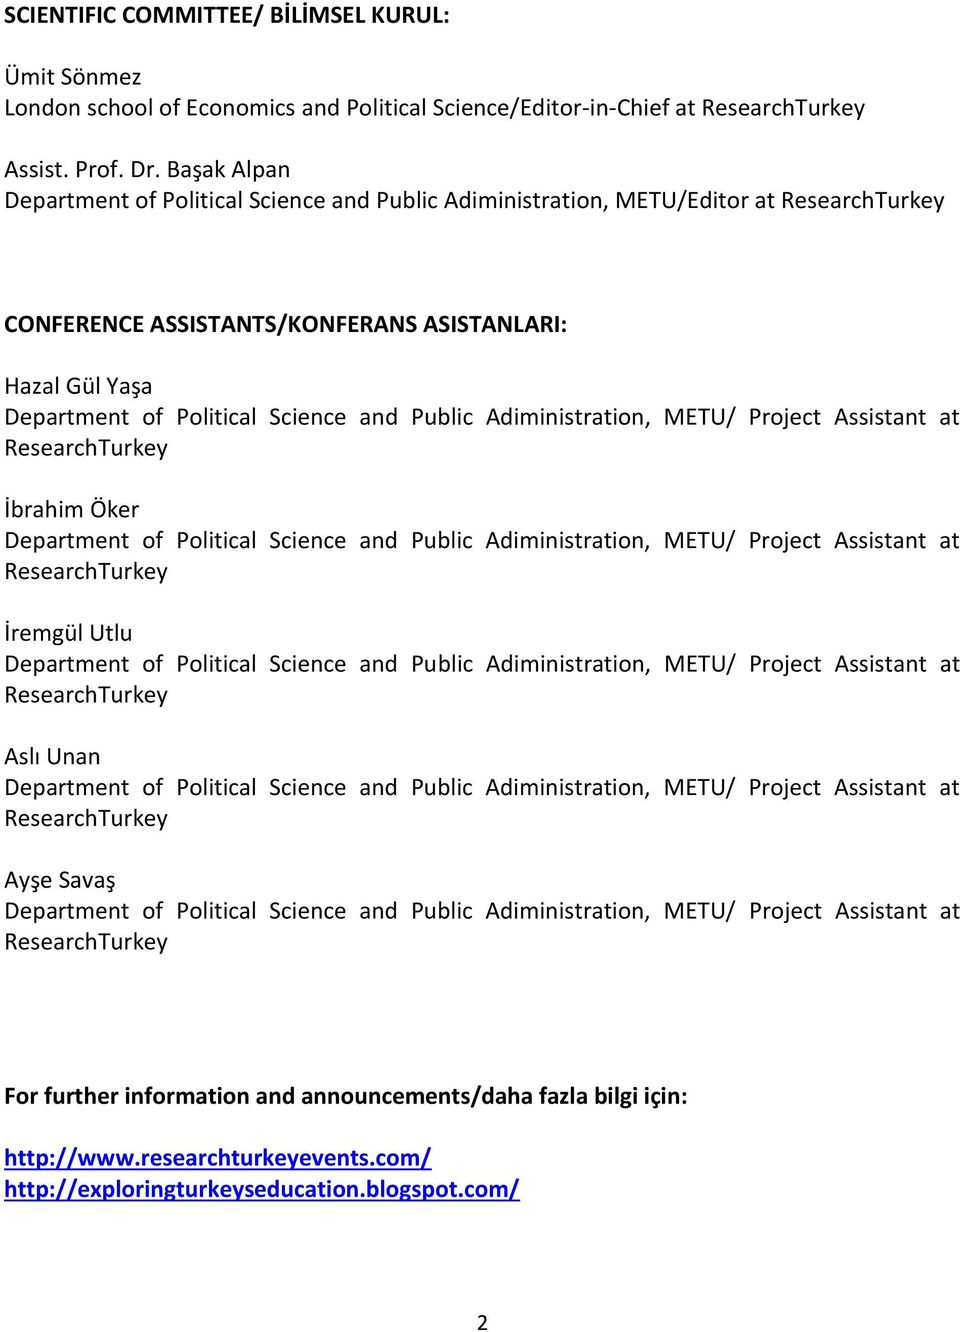 Public Adiministration, METU/ Project Assistant at ResearchTurkey İbrahim Öker Department of Political Science and Public Adiministration, METU/ Project Assistant at ResearchTurkey İremgül Utlu